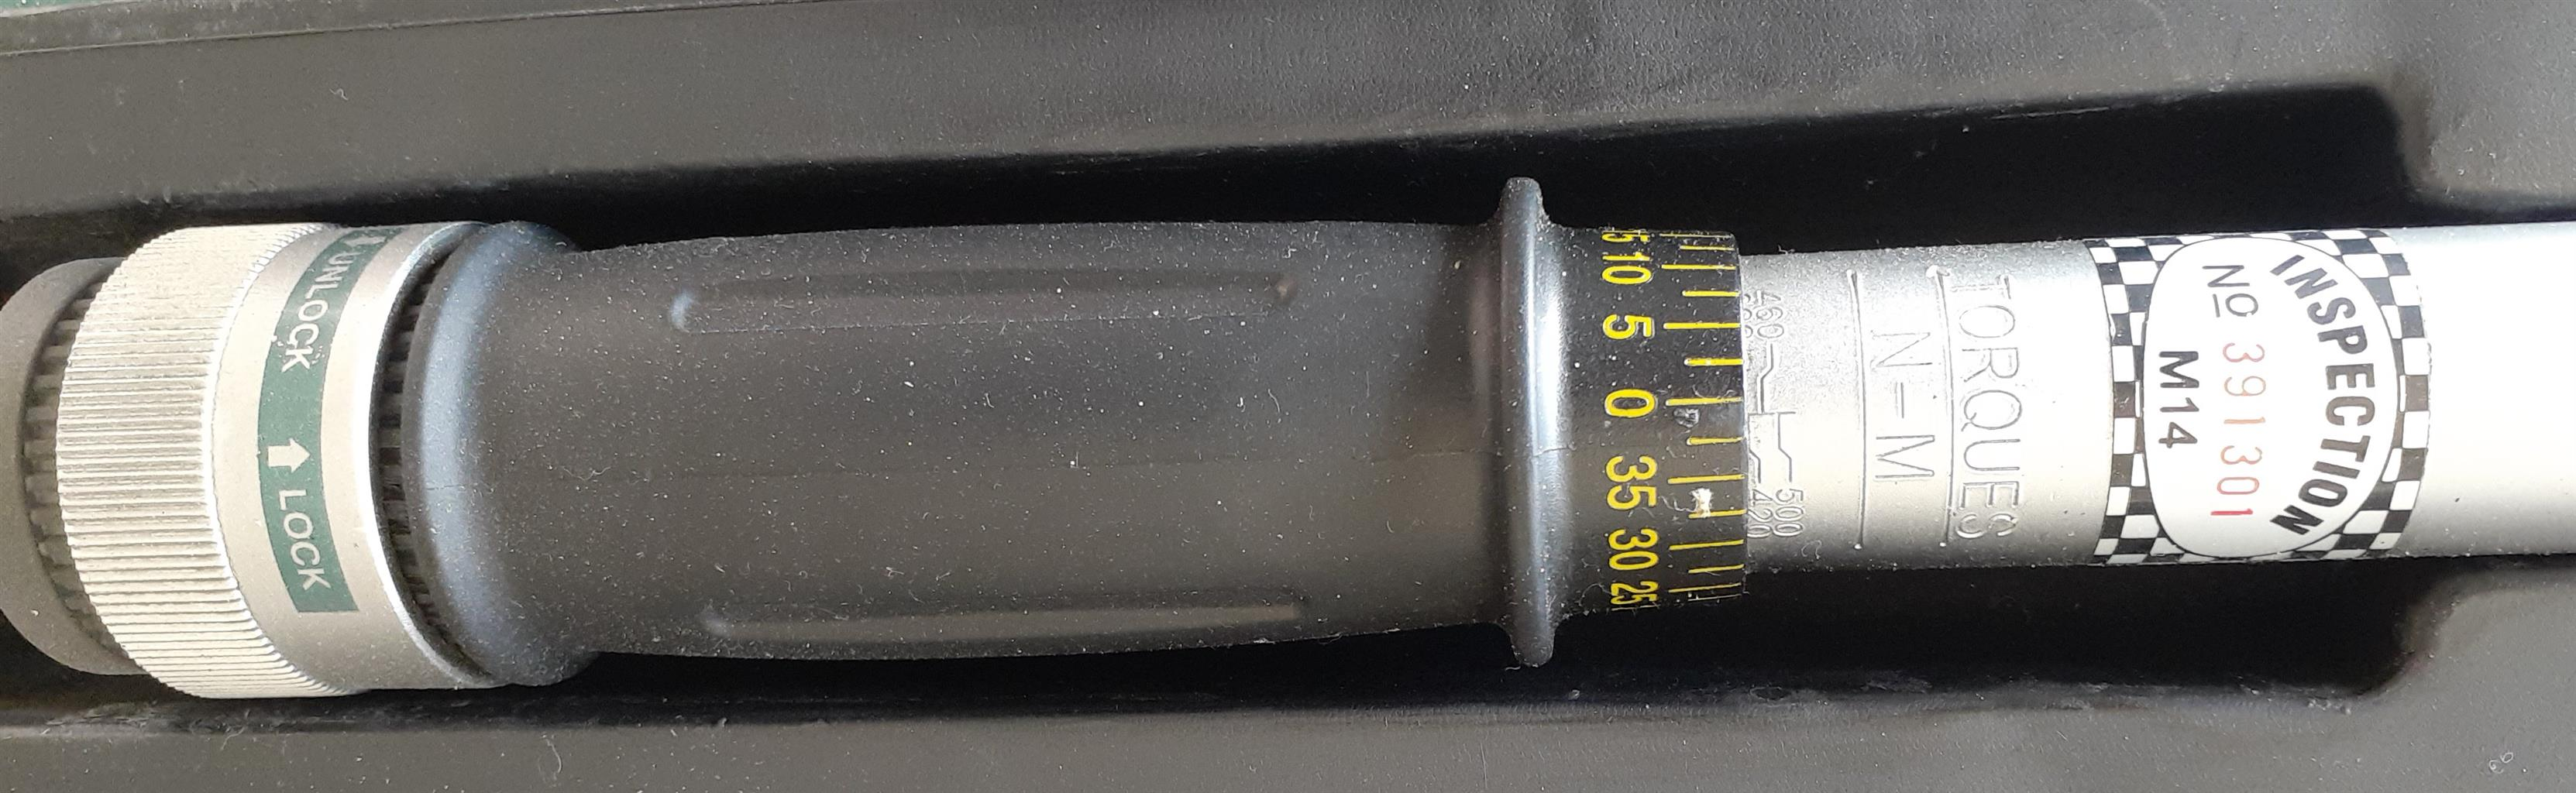 "Torque Wrench 3/4"" driver 100Nm - 500Nm Hardly Used"